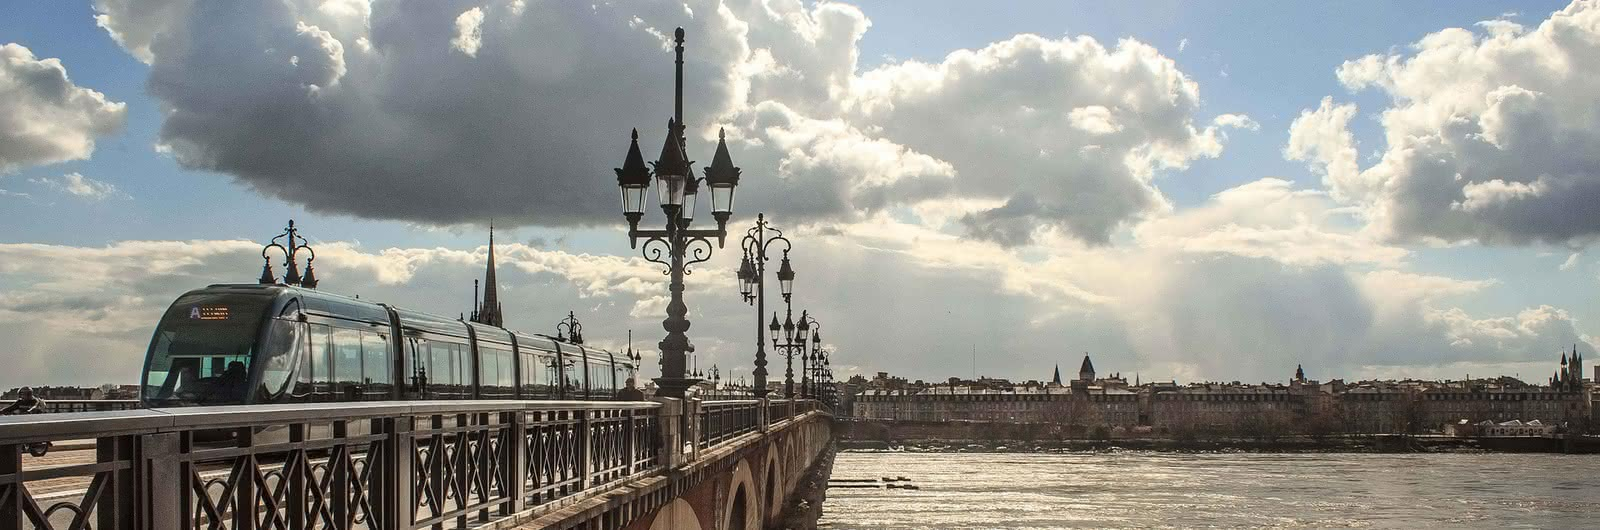 bordeaux city header